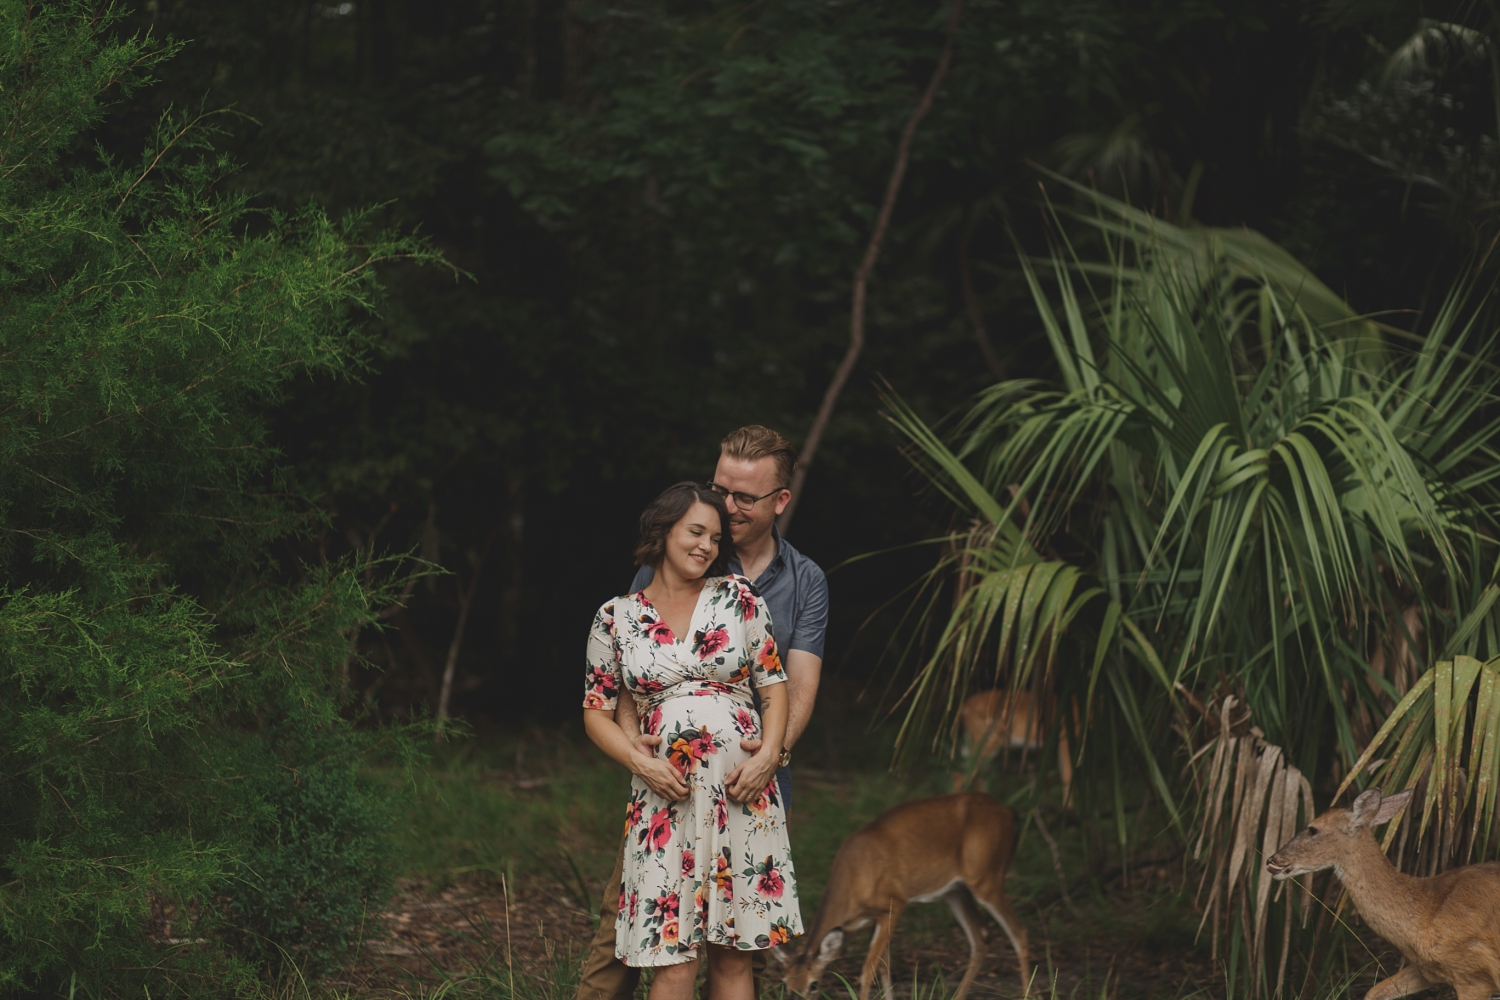 Stacy Paul Photography -  florida nature boho maternity photographer_0007.jpg